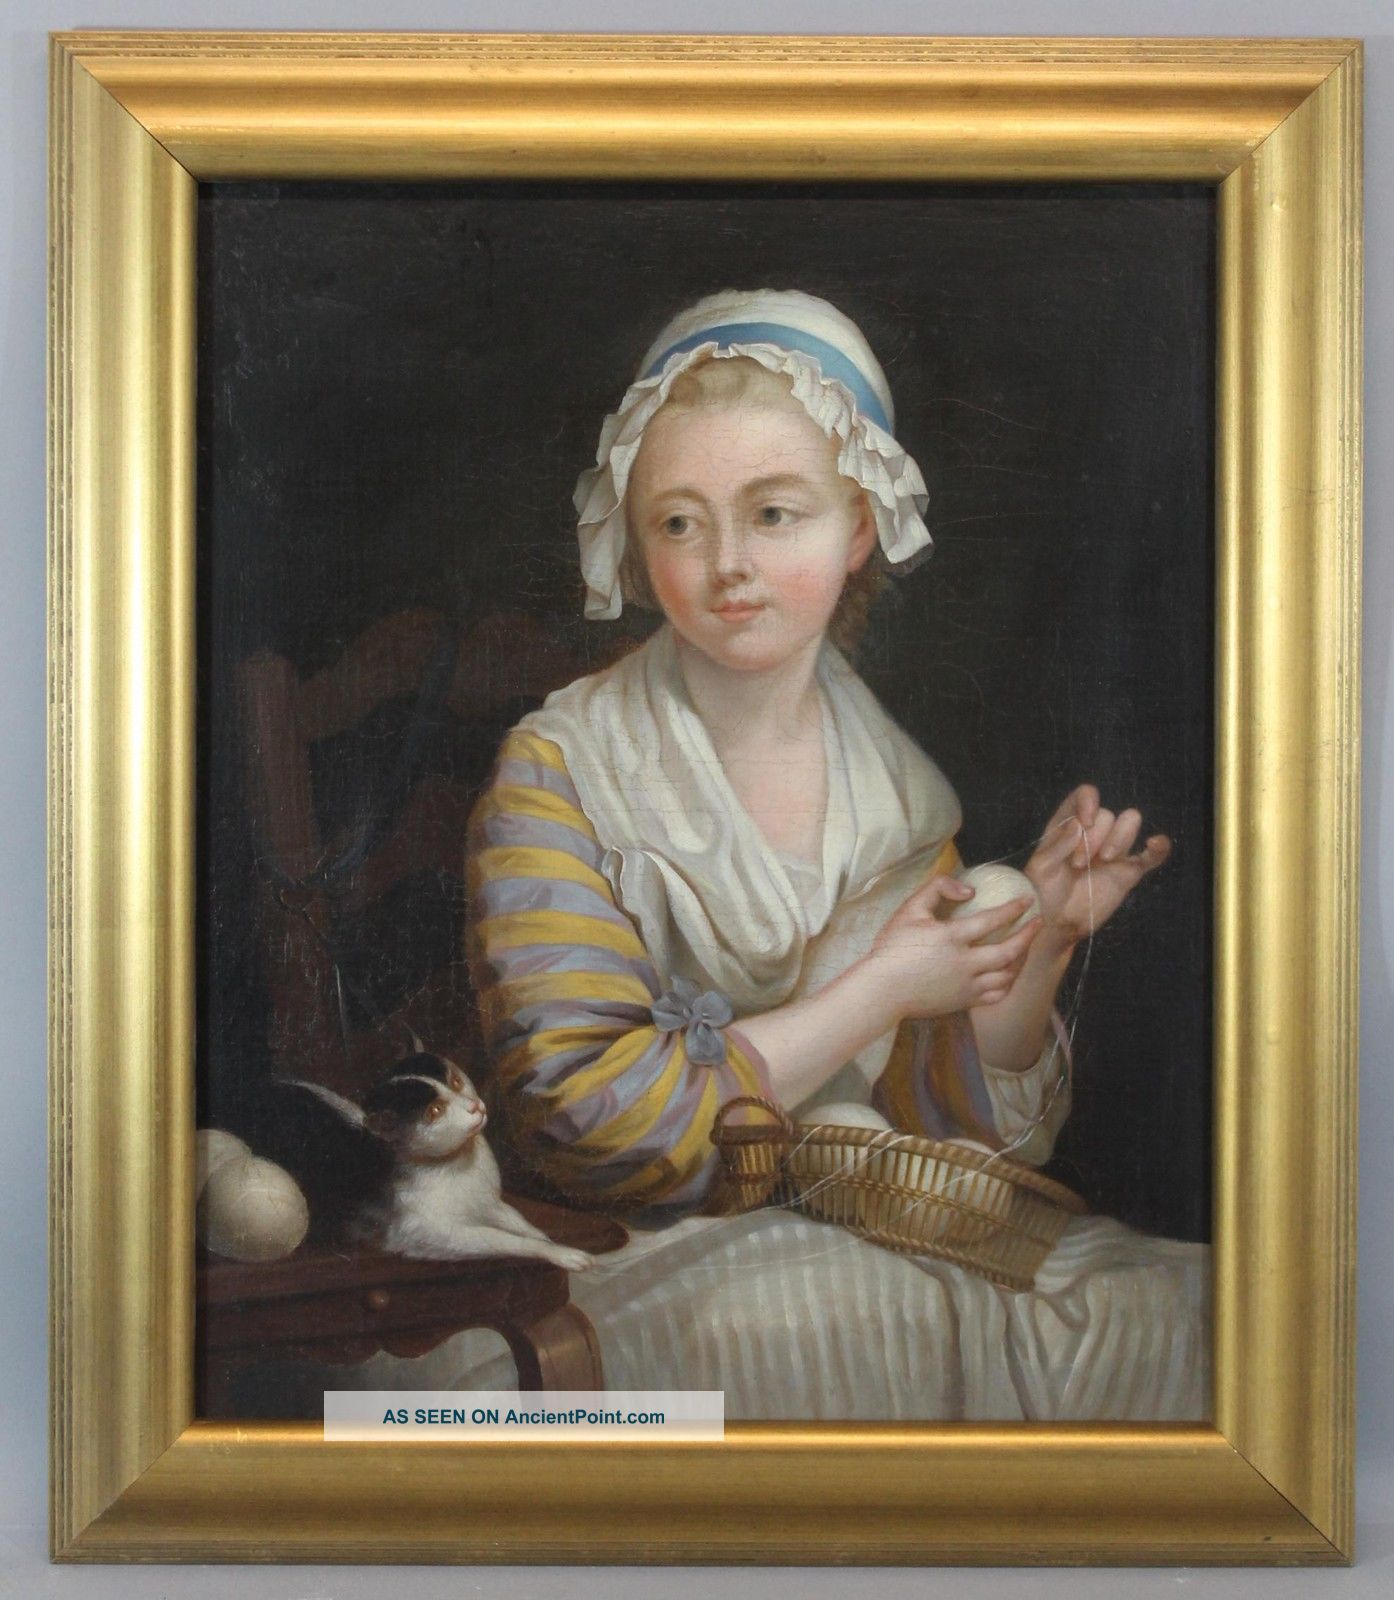 Large Antique Early 19thc Portrait Genre Oil Painting,  Young Girl W/ Cat & Yarn Other Antique Sewing photo